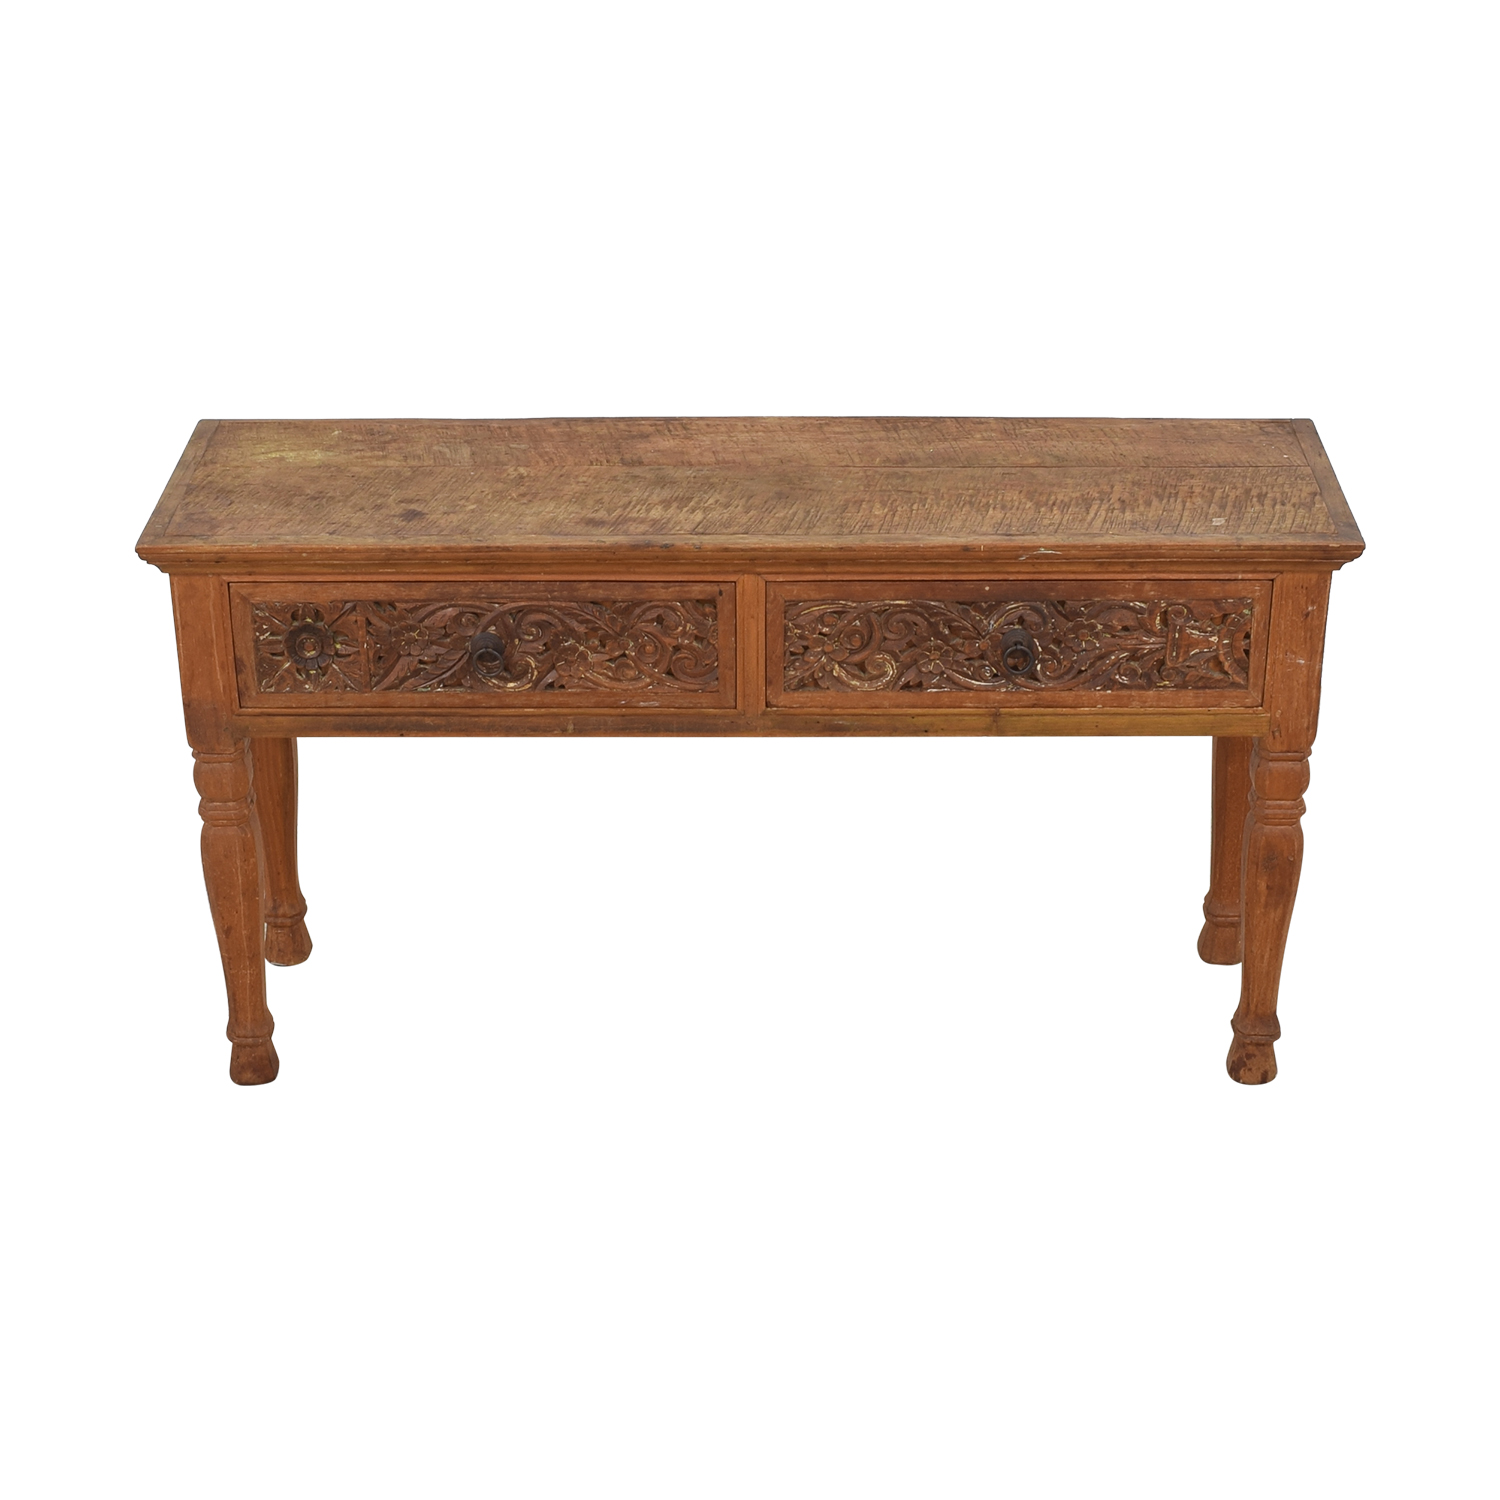 ABC Carpet & Home ABC Carpet & Home Carved Indonesian Style Console Table nyc